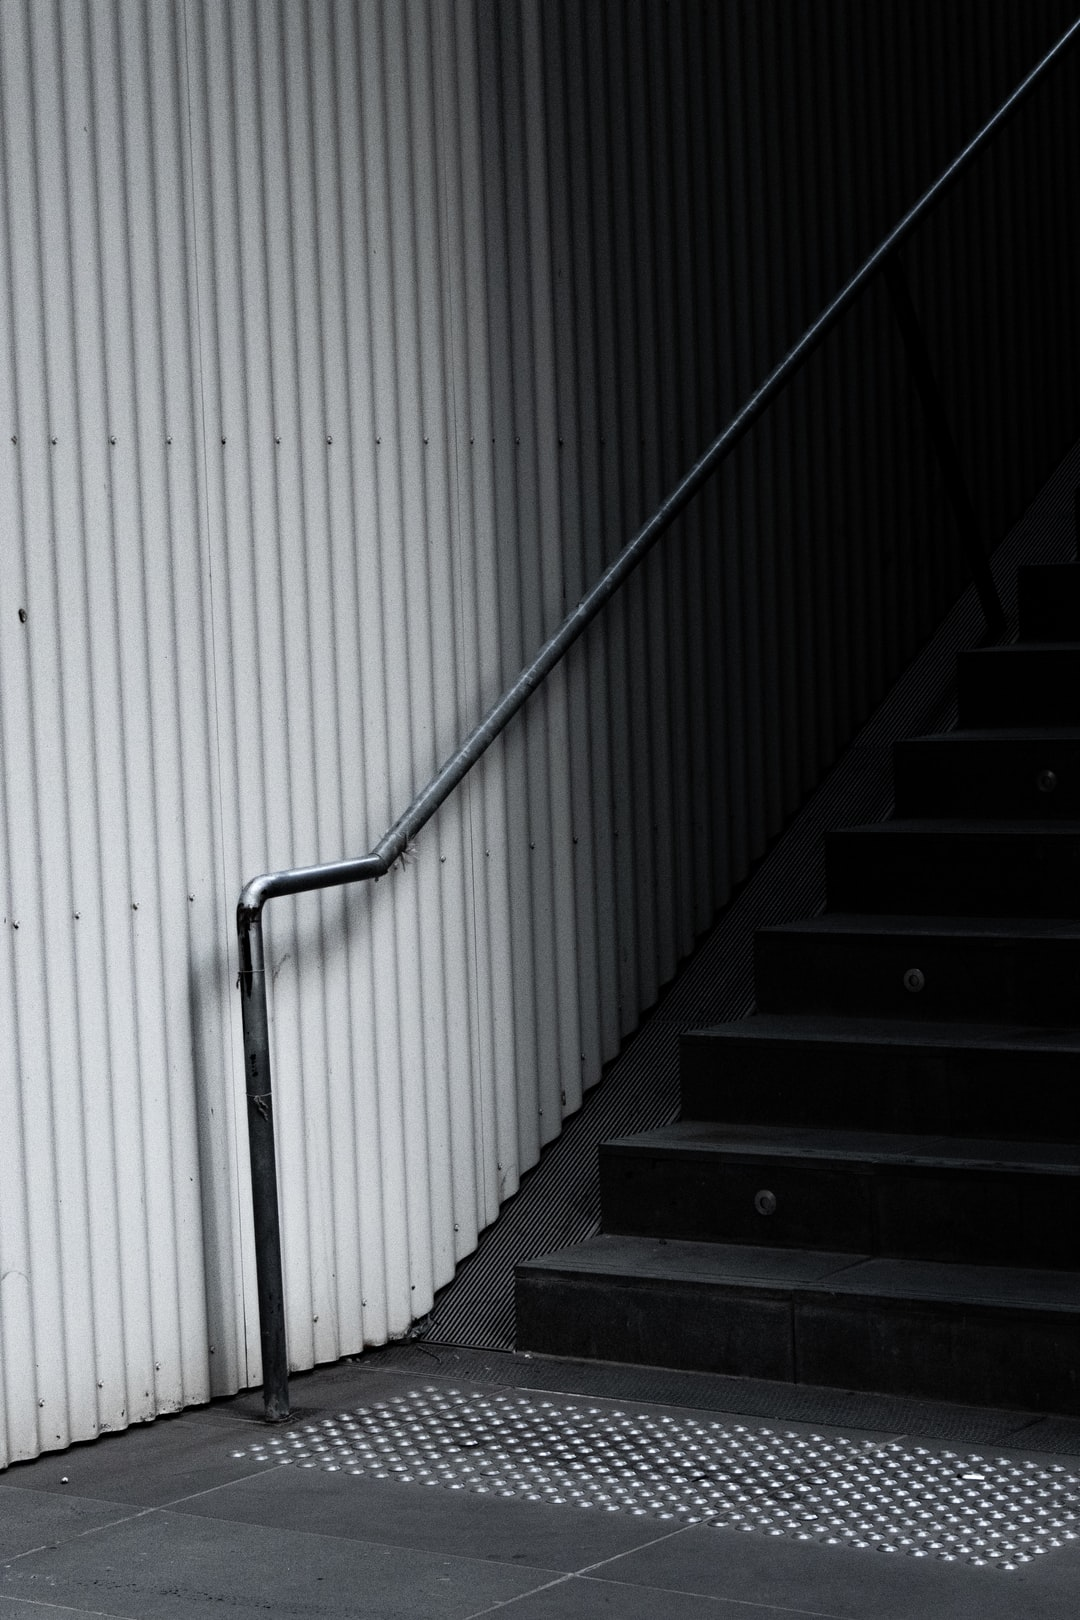 Stairway to unknown